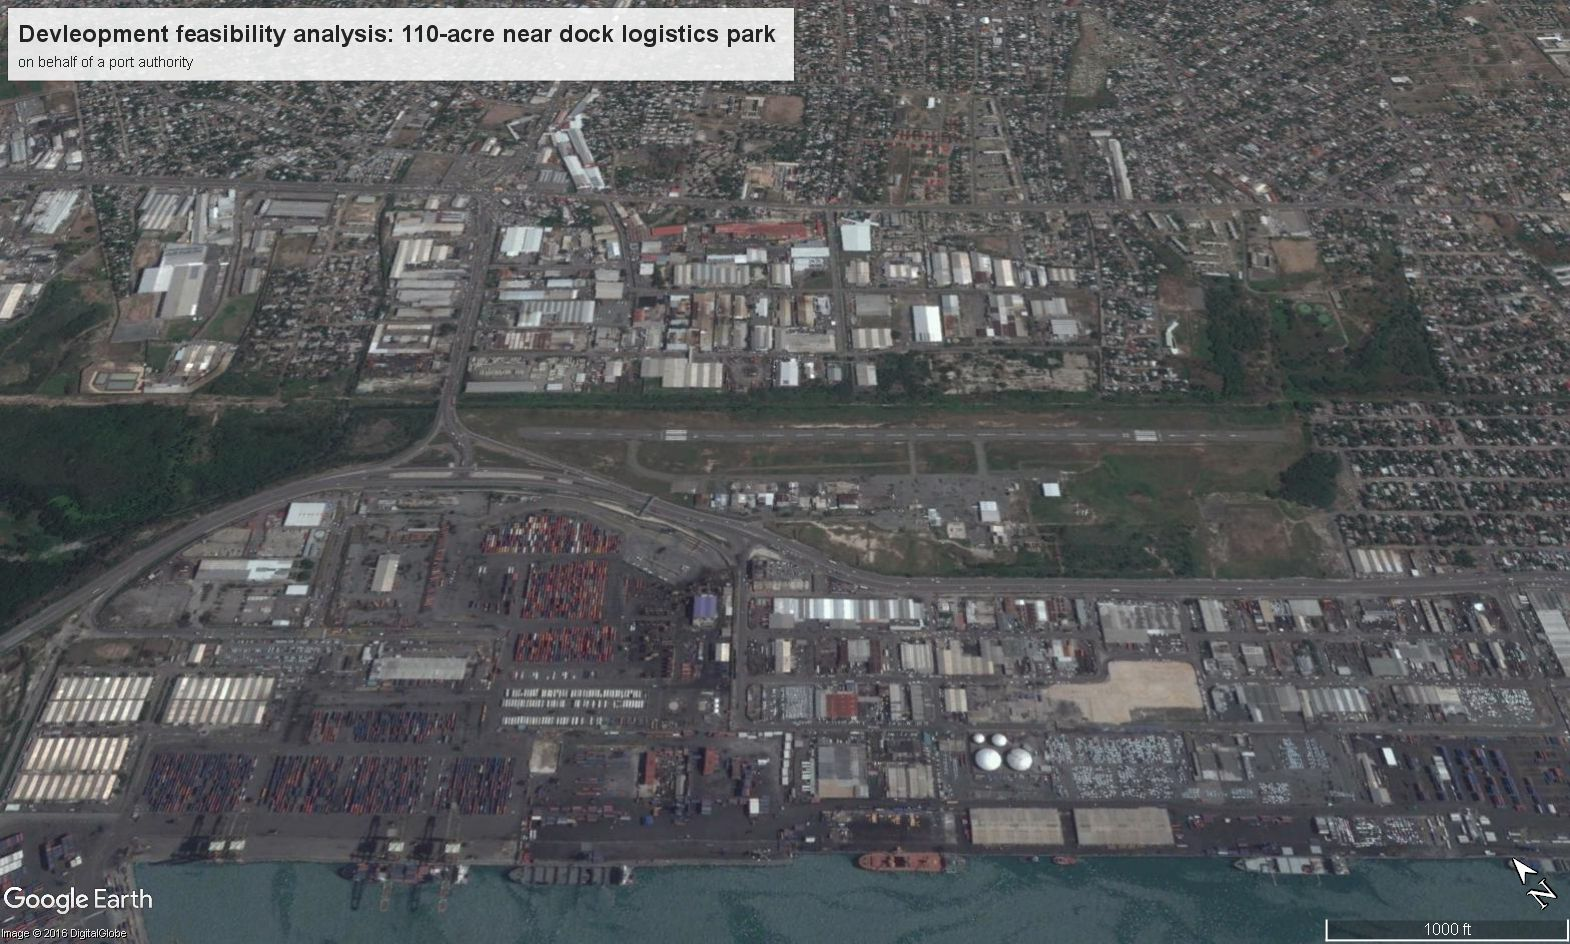 Port Related Logistics Park Development Feasibility Analysis